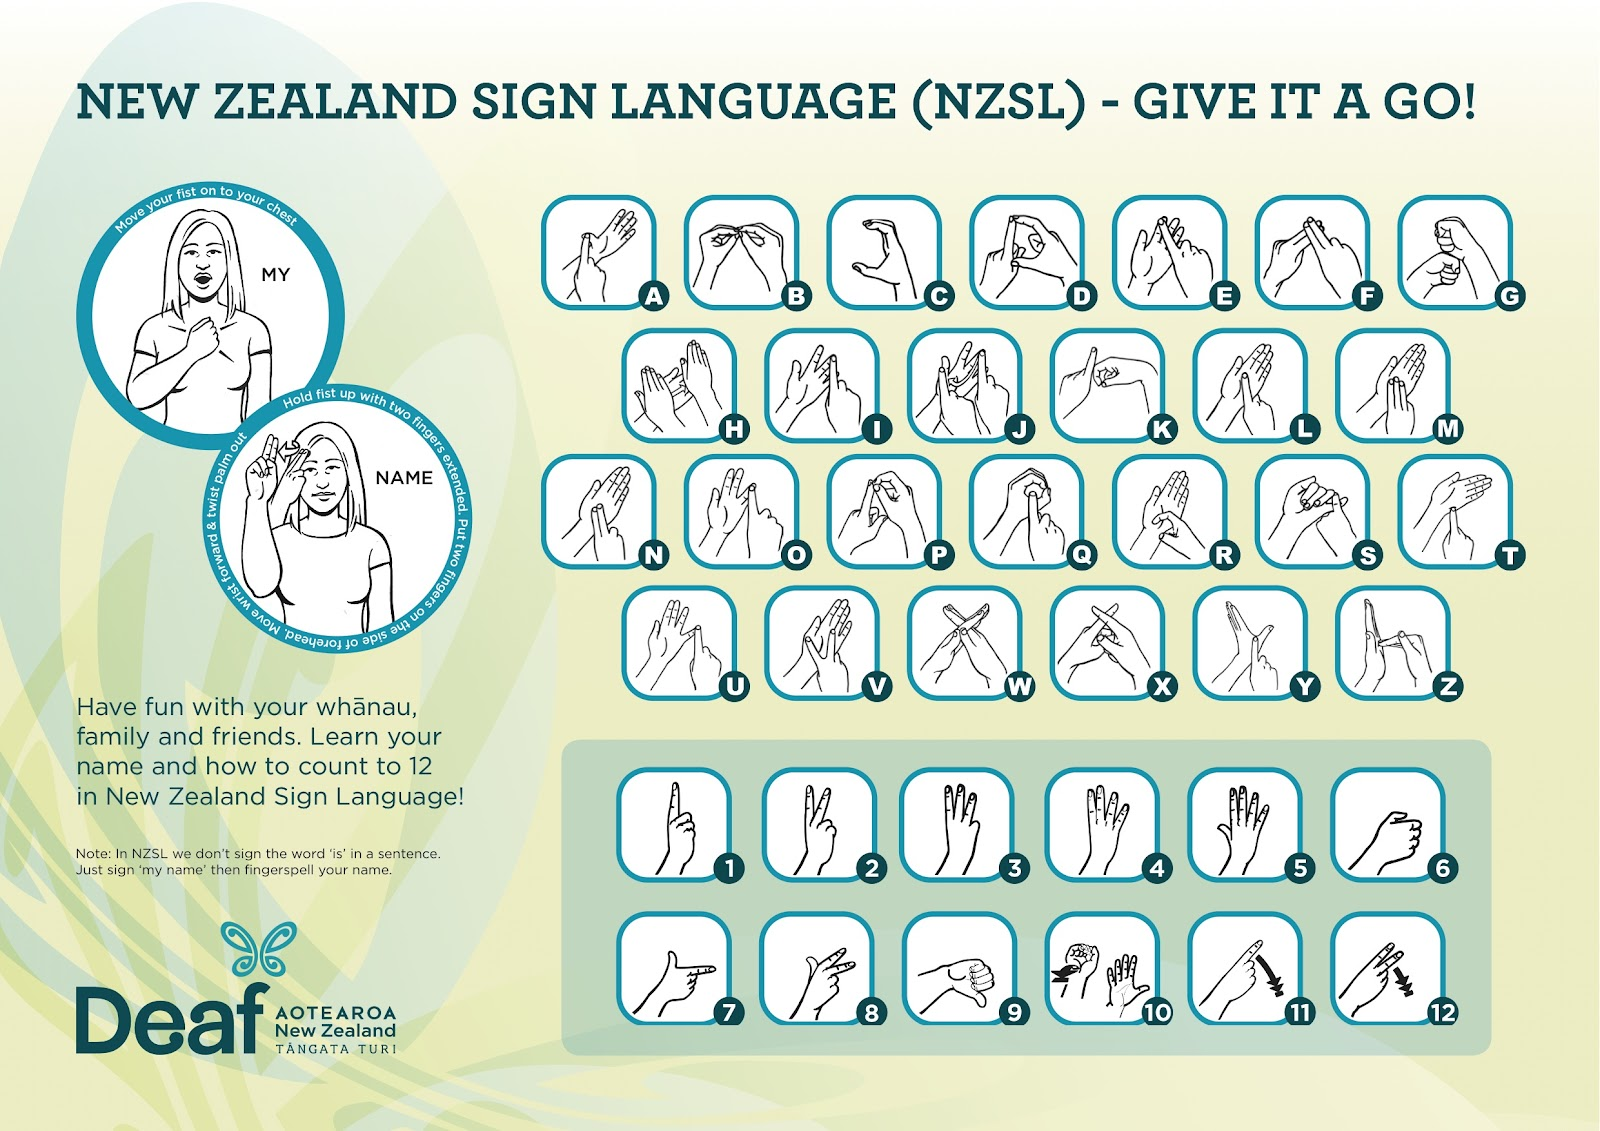 Online Sign Language Dictionary Sites - verywellhealth.com